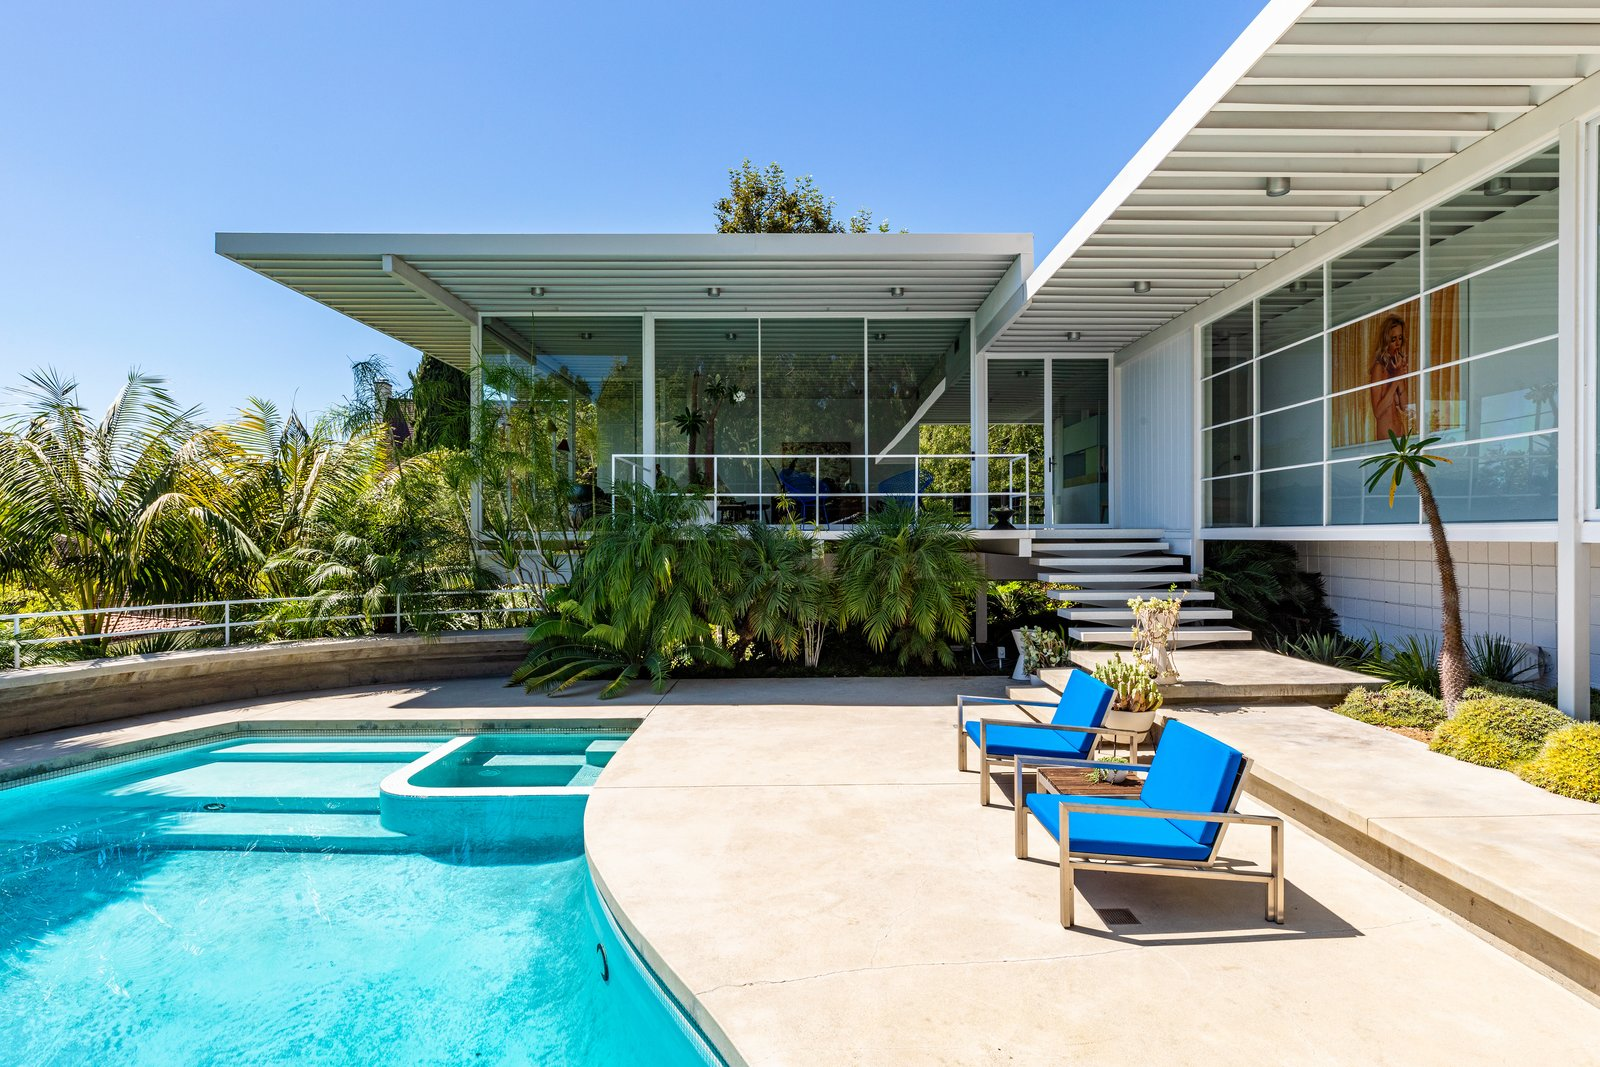 The pool and the pool deck were redone in the renovation. Updates introduced a semicircular bench with a railing at the perimeter, a hot tub, a wood-clad sauna, and a cold plunge pool.